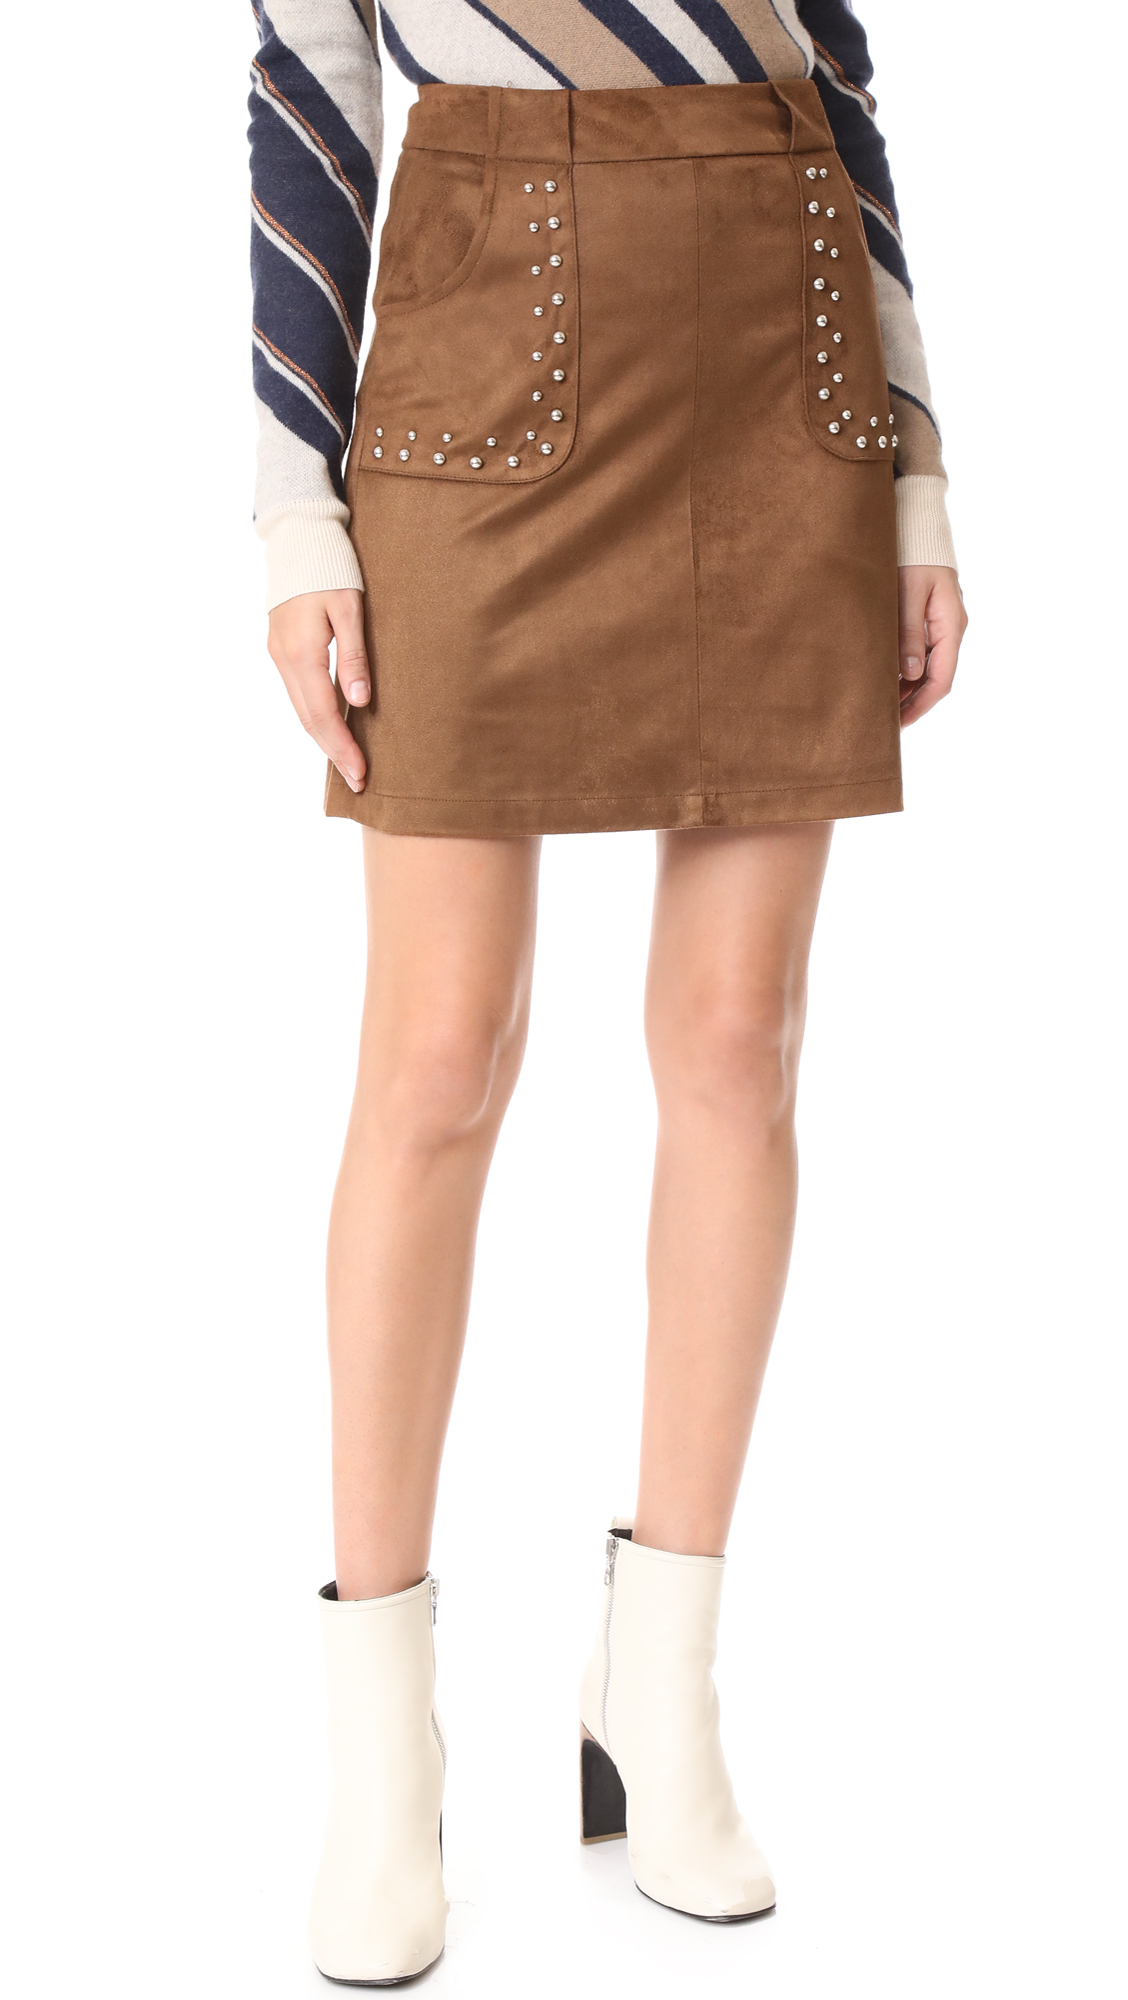 BB Dakota Cain Faux Suede Skirt - Antelope